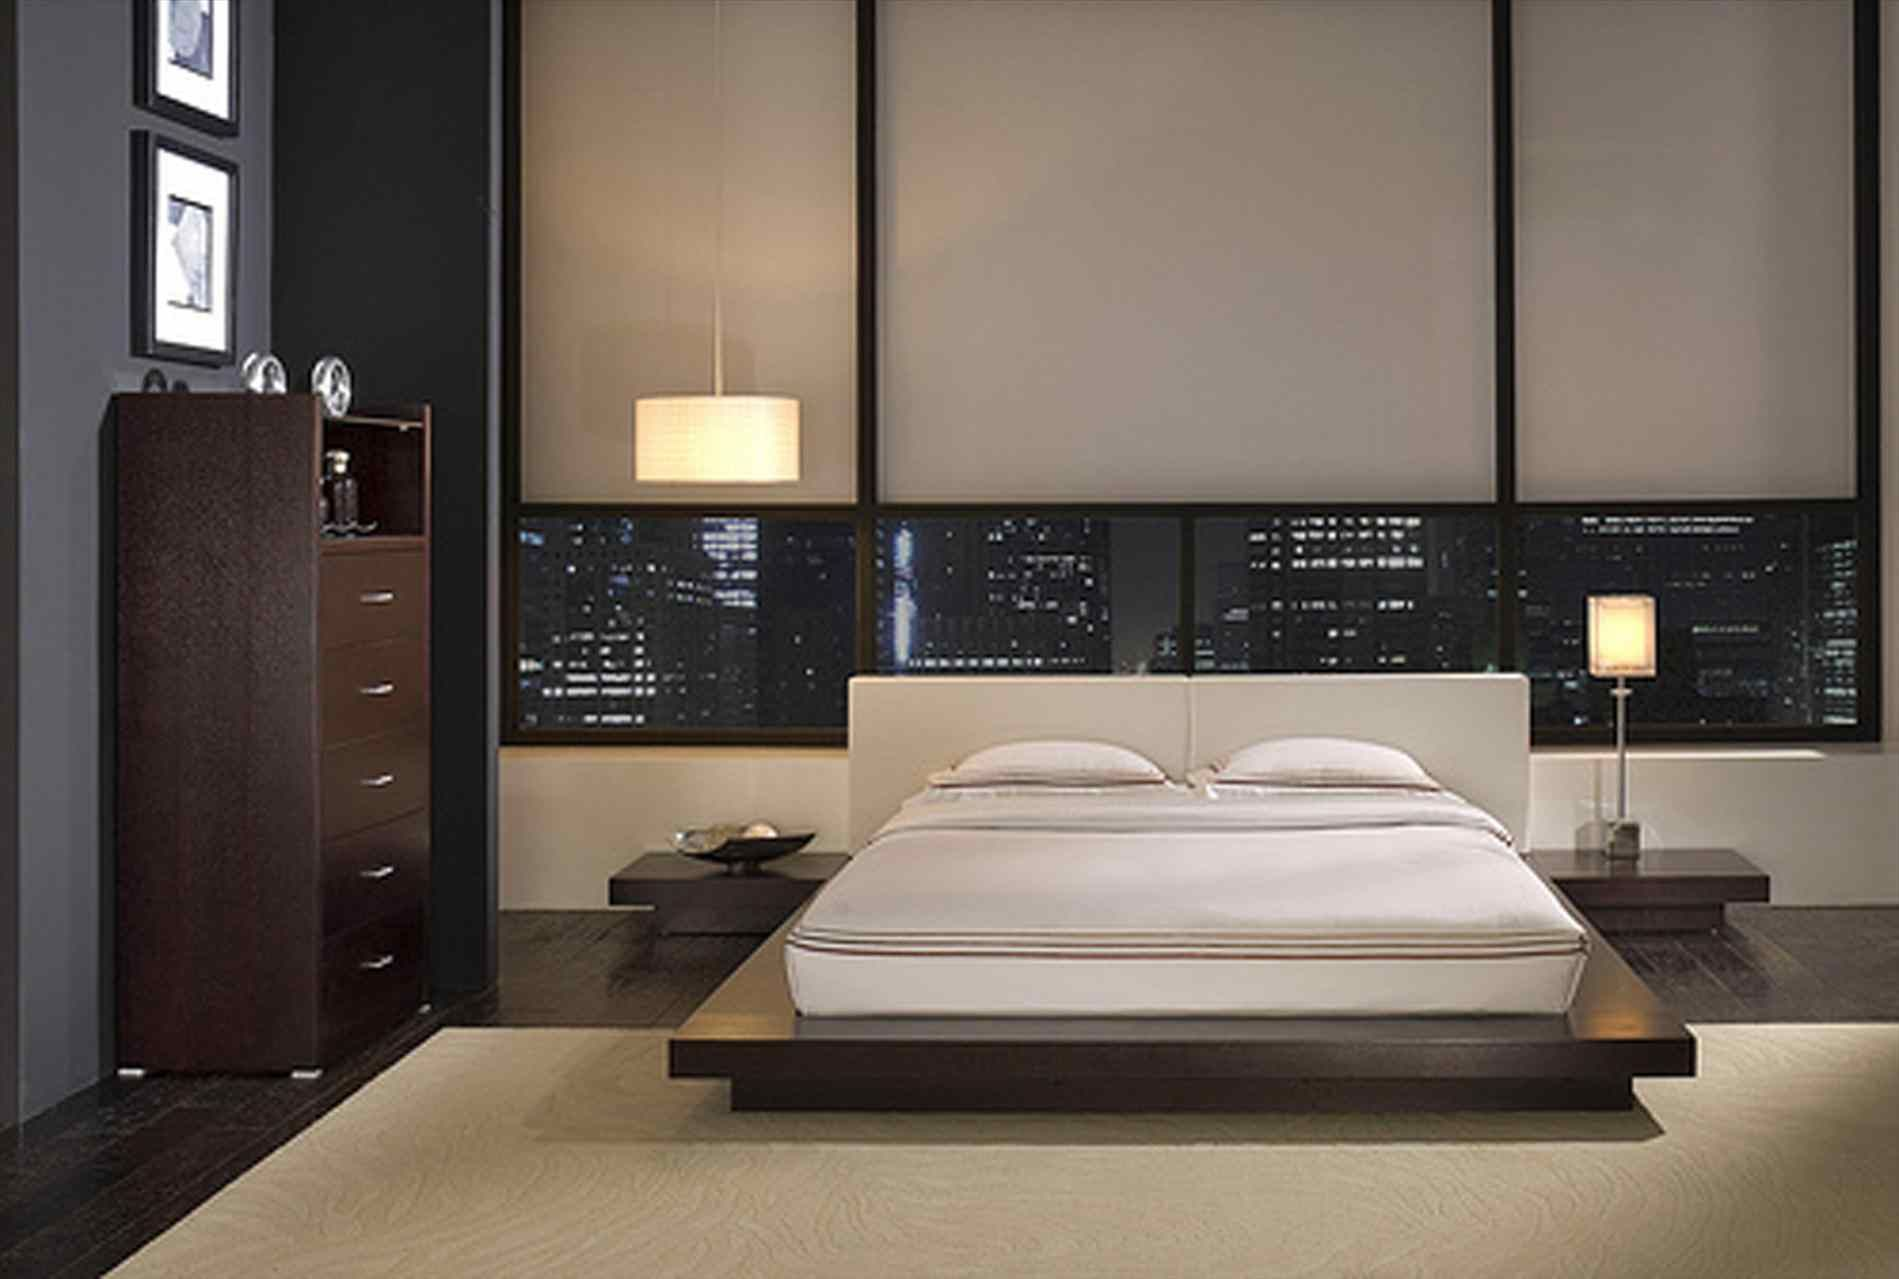 Bedrooms Designs Fair Full Size Of Bedroomawesome Beige Wood Glass Cool Design Classic Design Inspiration